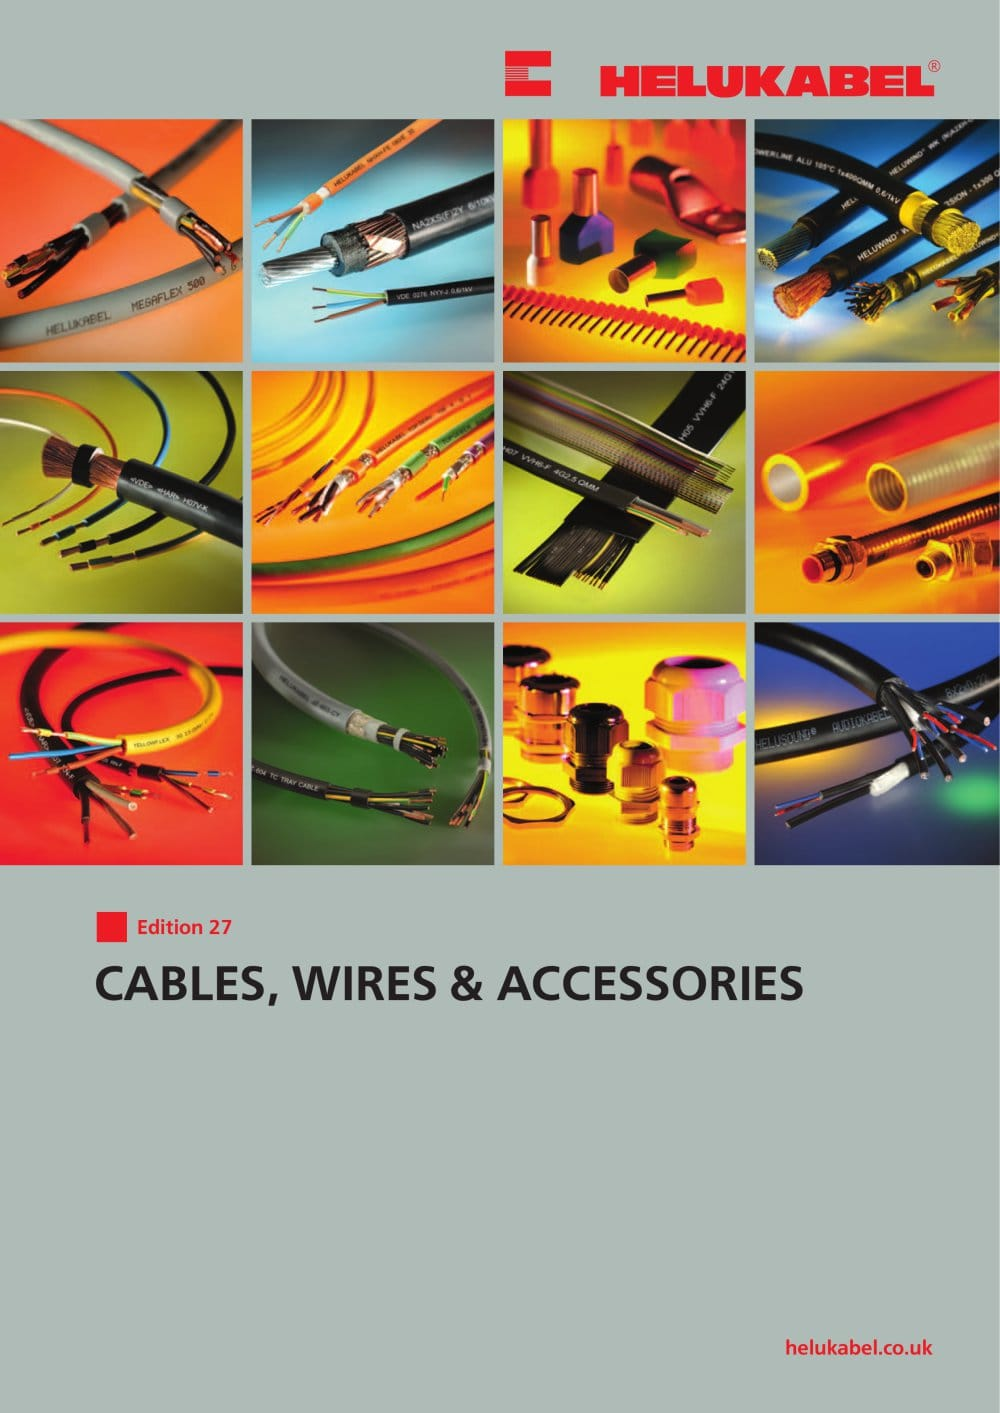 Cables & Wires - HELUKABEL - PDF Catalogue | Technical Documentation ...